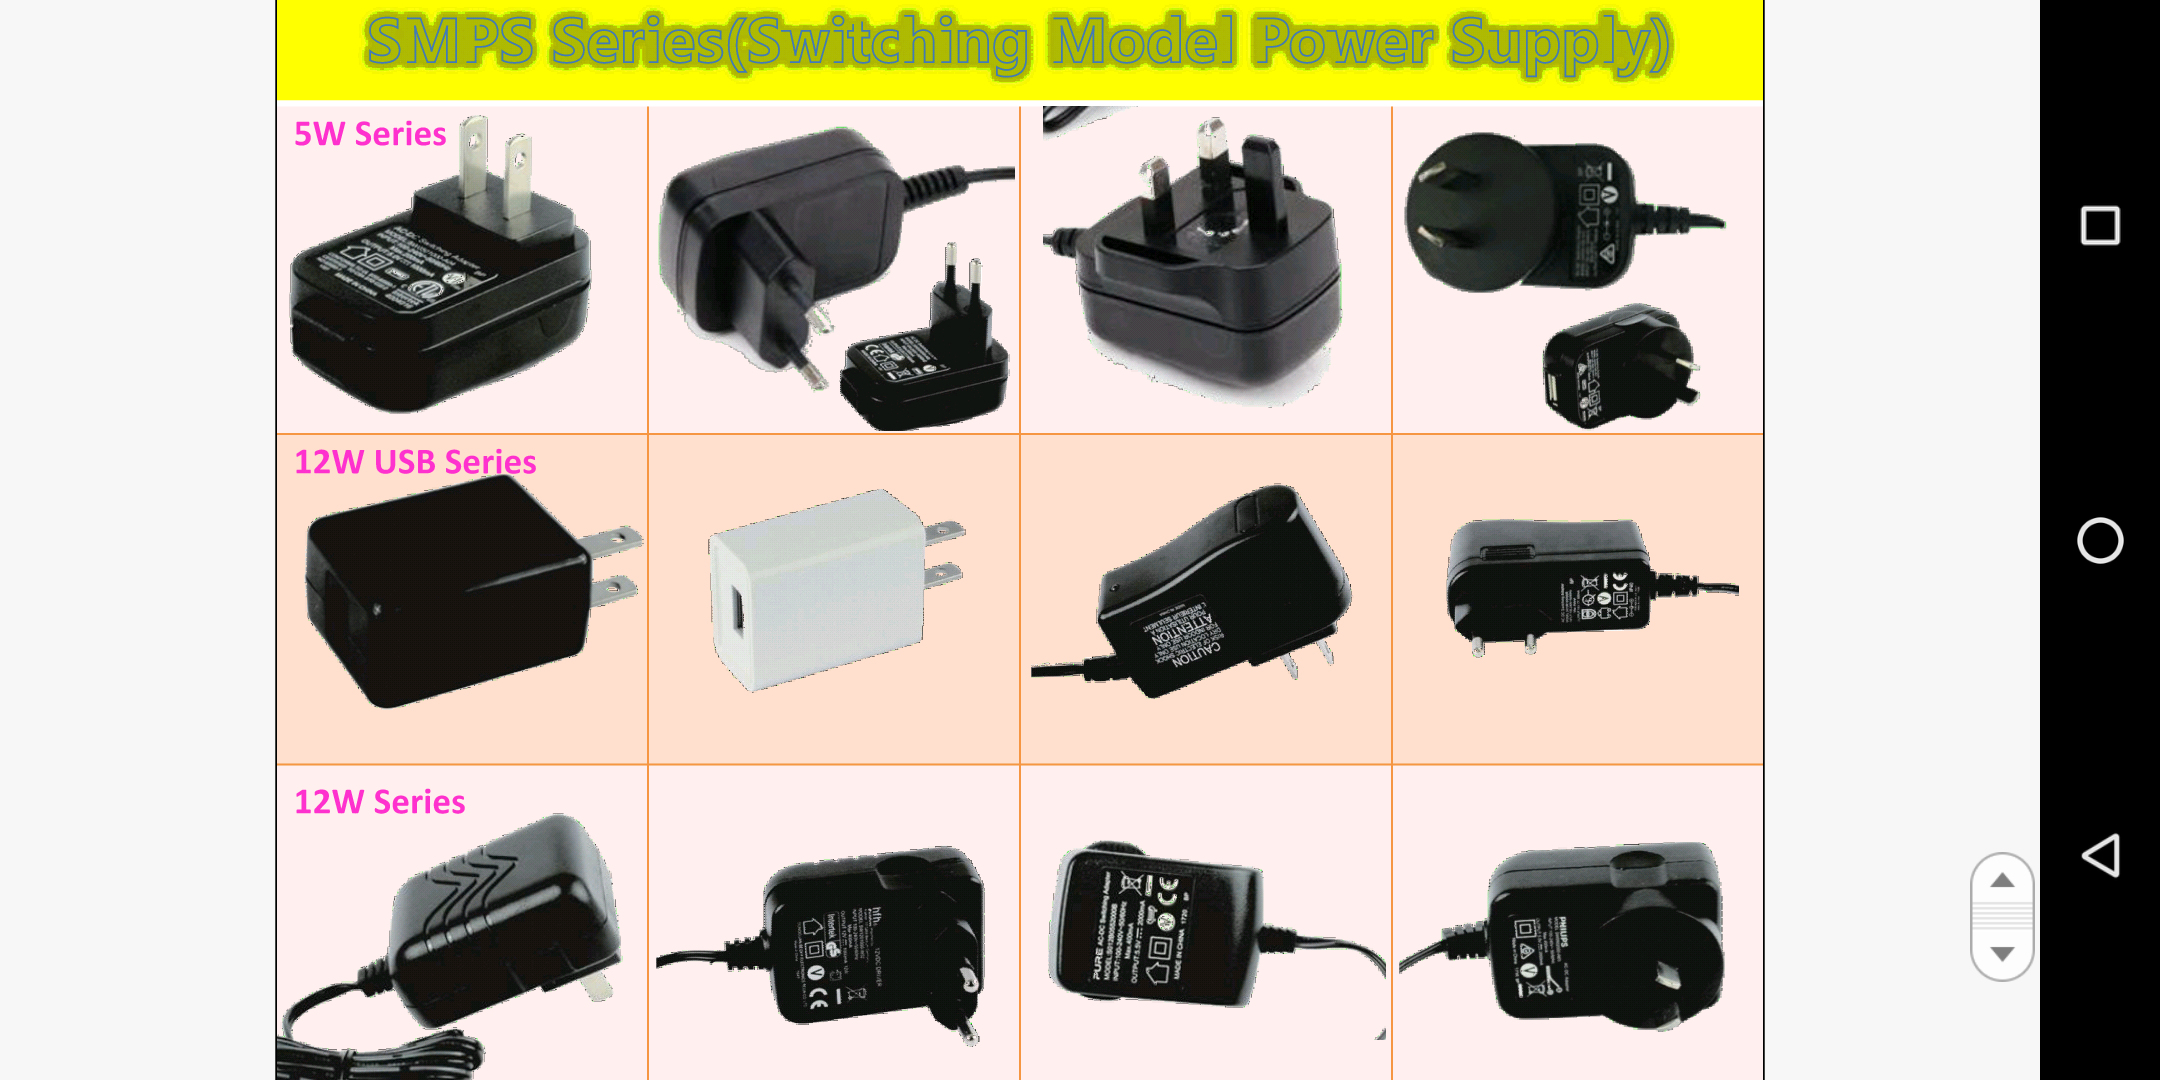 Switching Power Supply, LED Driver / LED Intelligent Driver, Dimming, Sensors